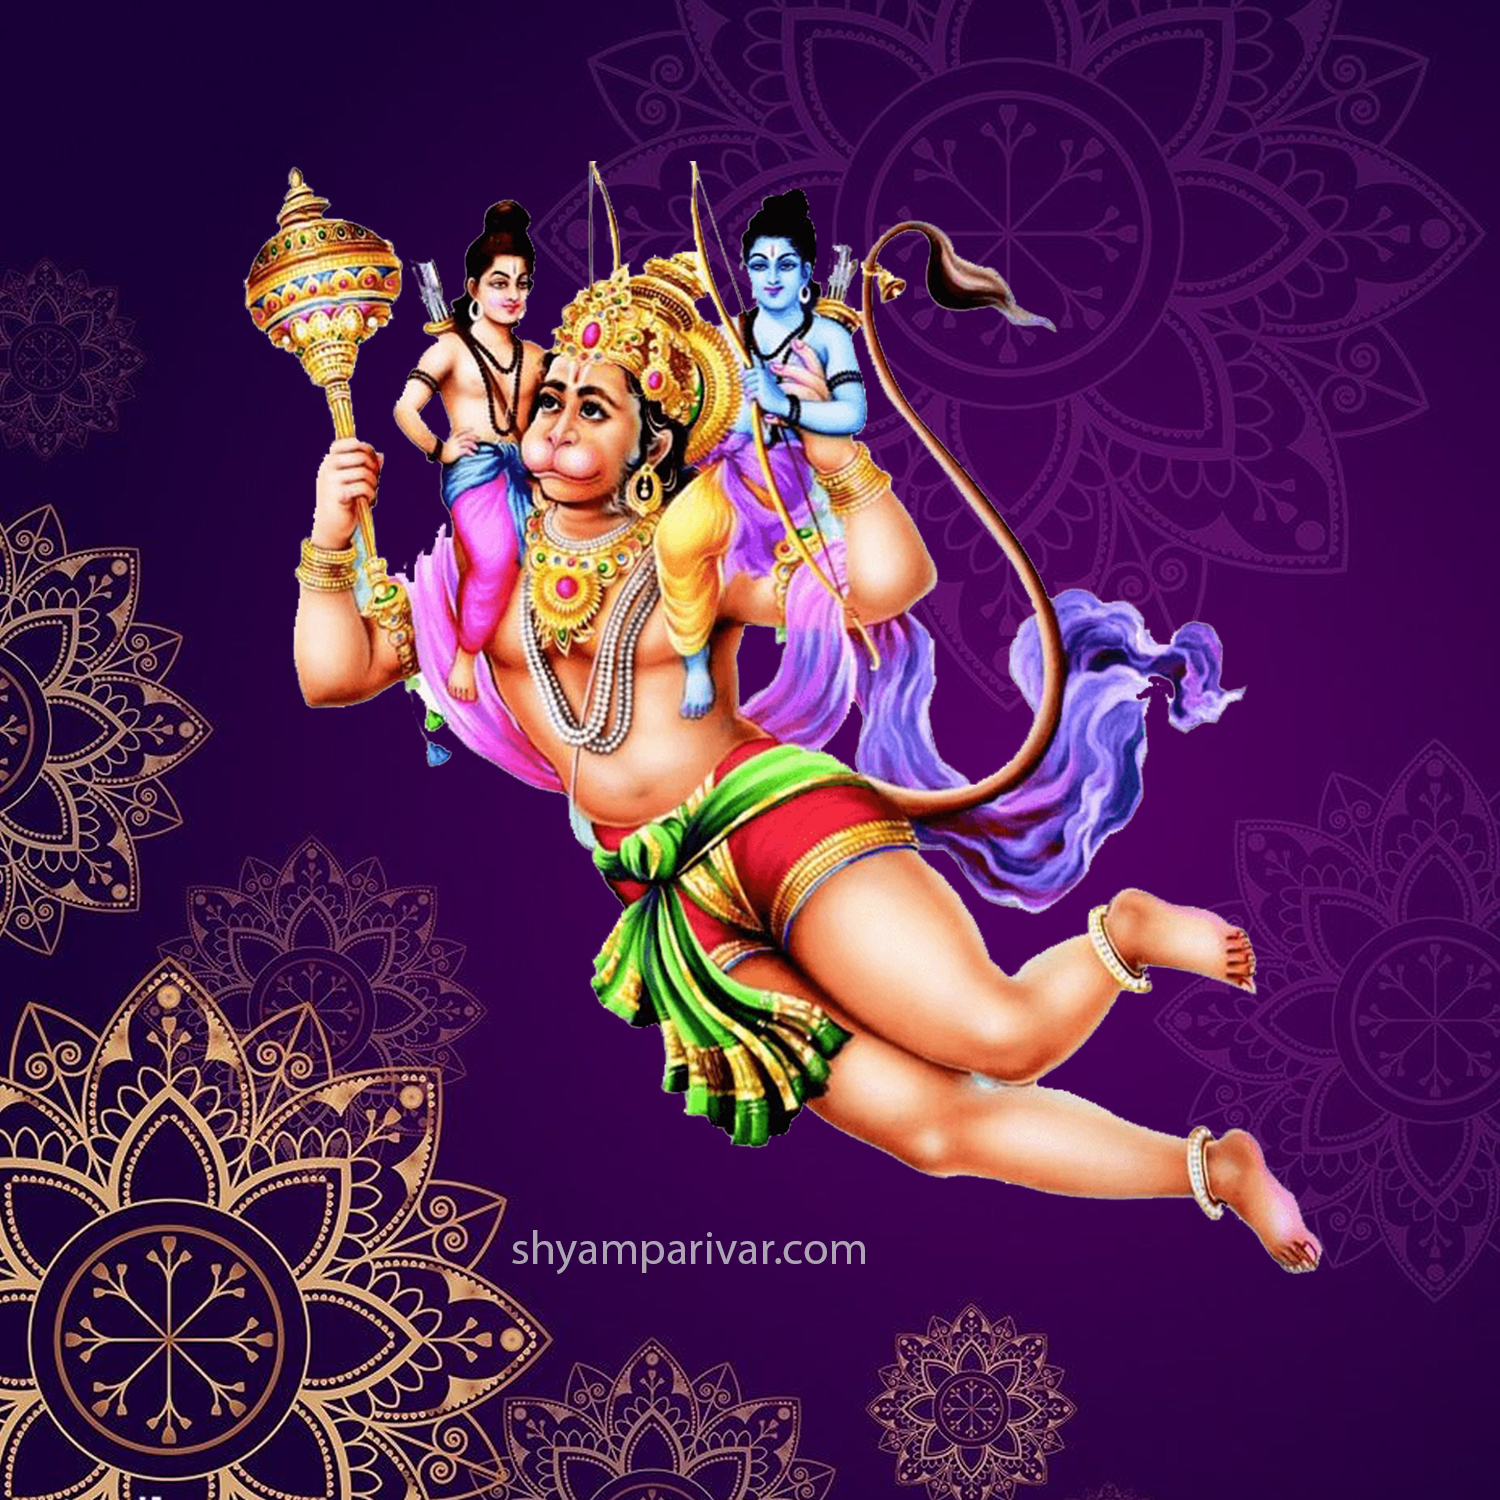 Best Hanuman Ji Photo with Shri Ram and Lakshman